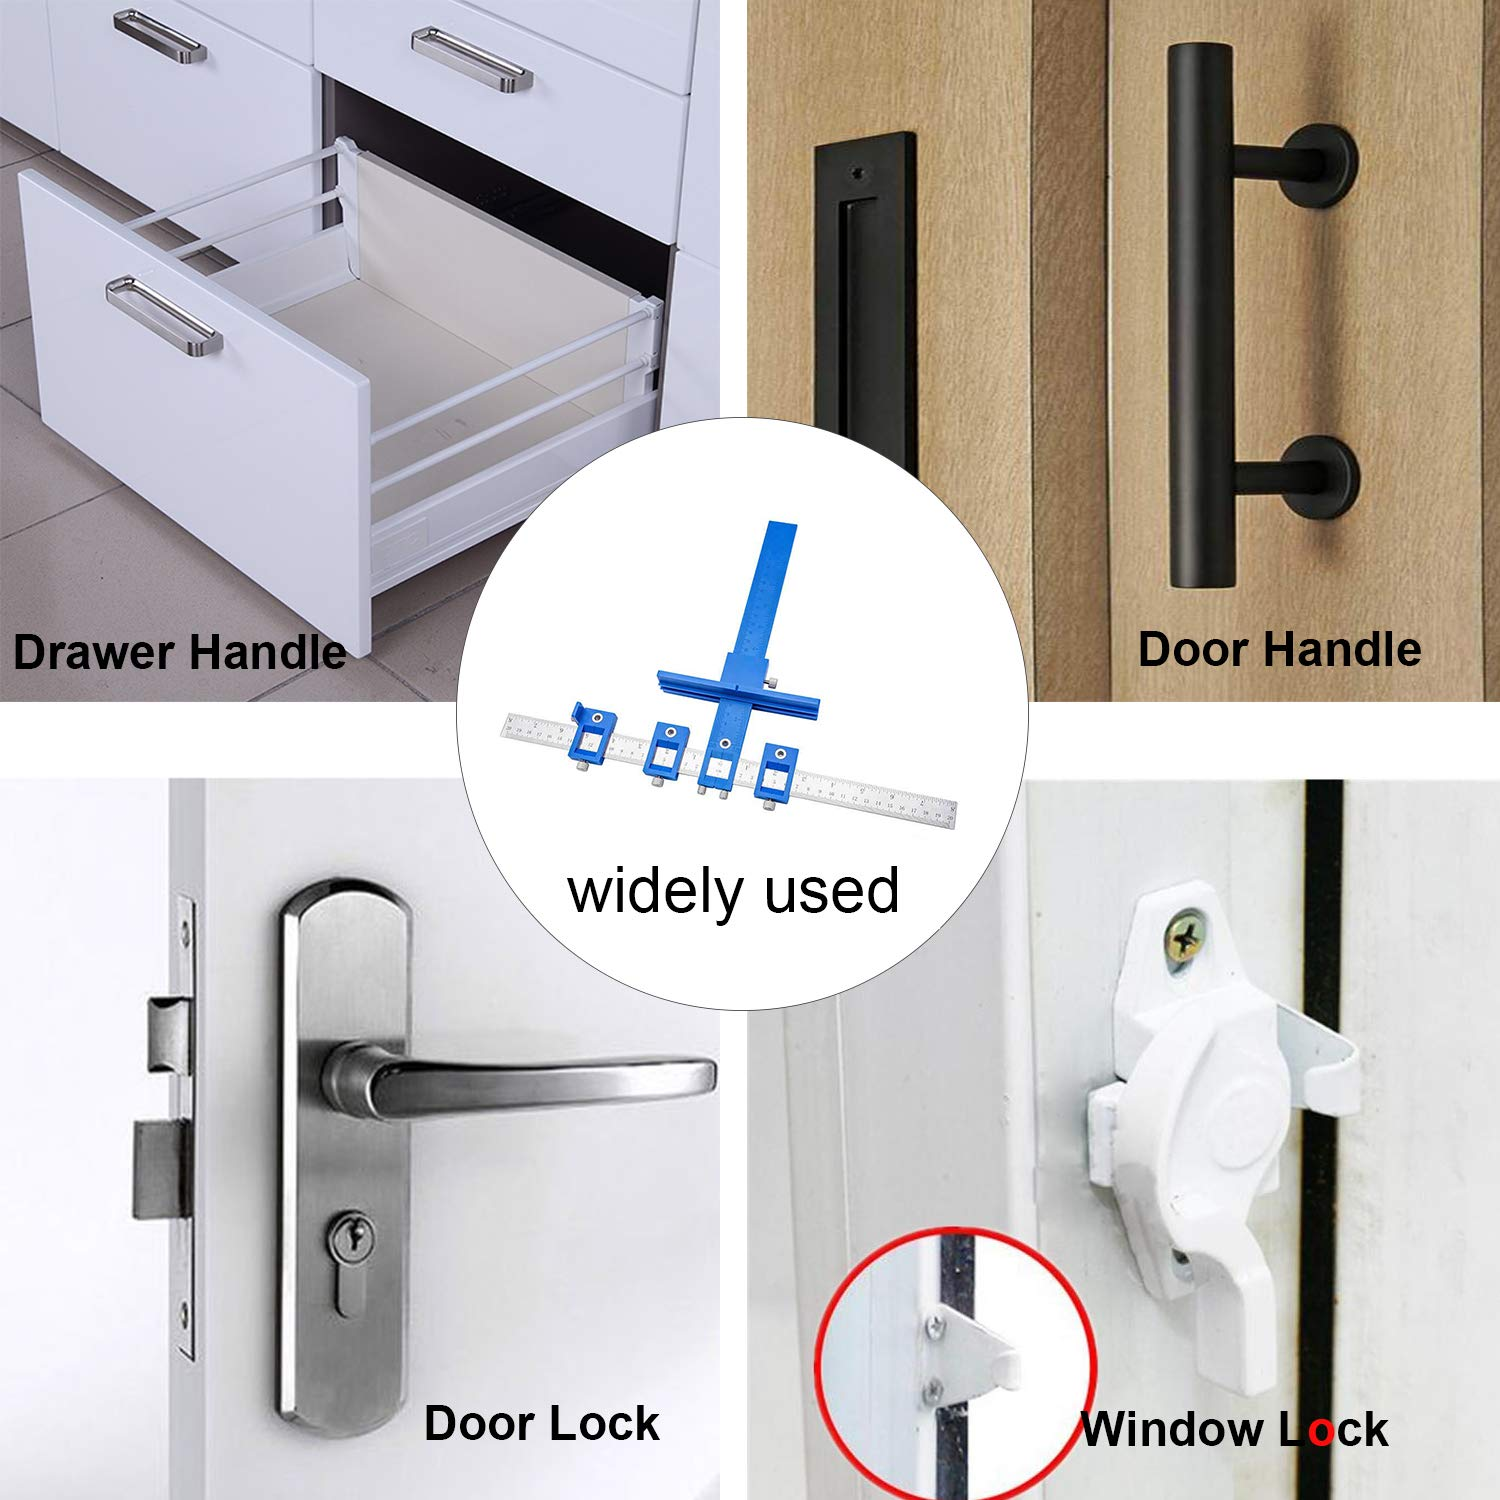 Power Tools Punch Locator Drill Guide Sleeve Cabinet Hardware Jig//Template Wood Drilling Dowelling for Installation of Handles Knobs on Doors and Drawer Pull with Storage Bag